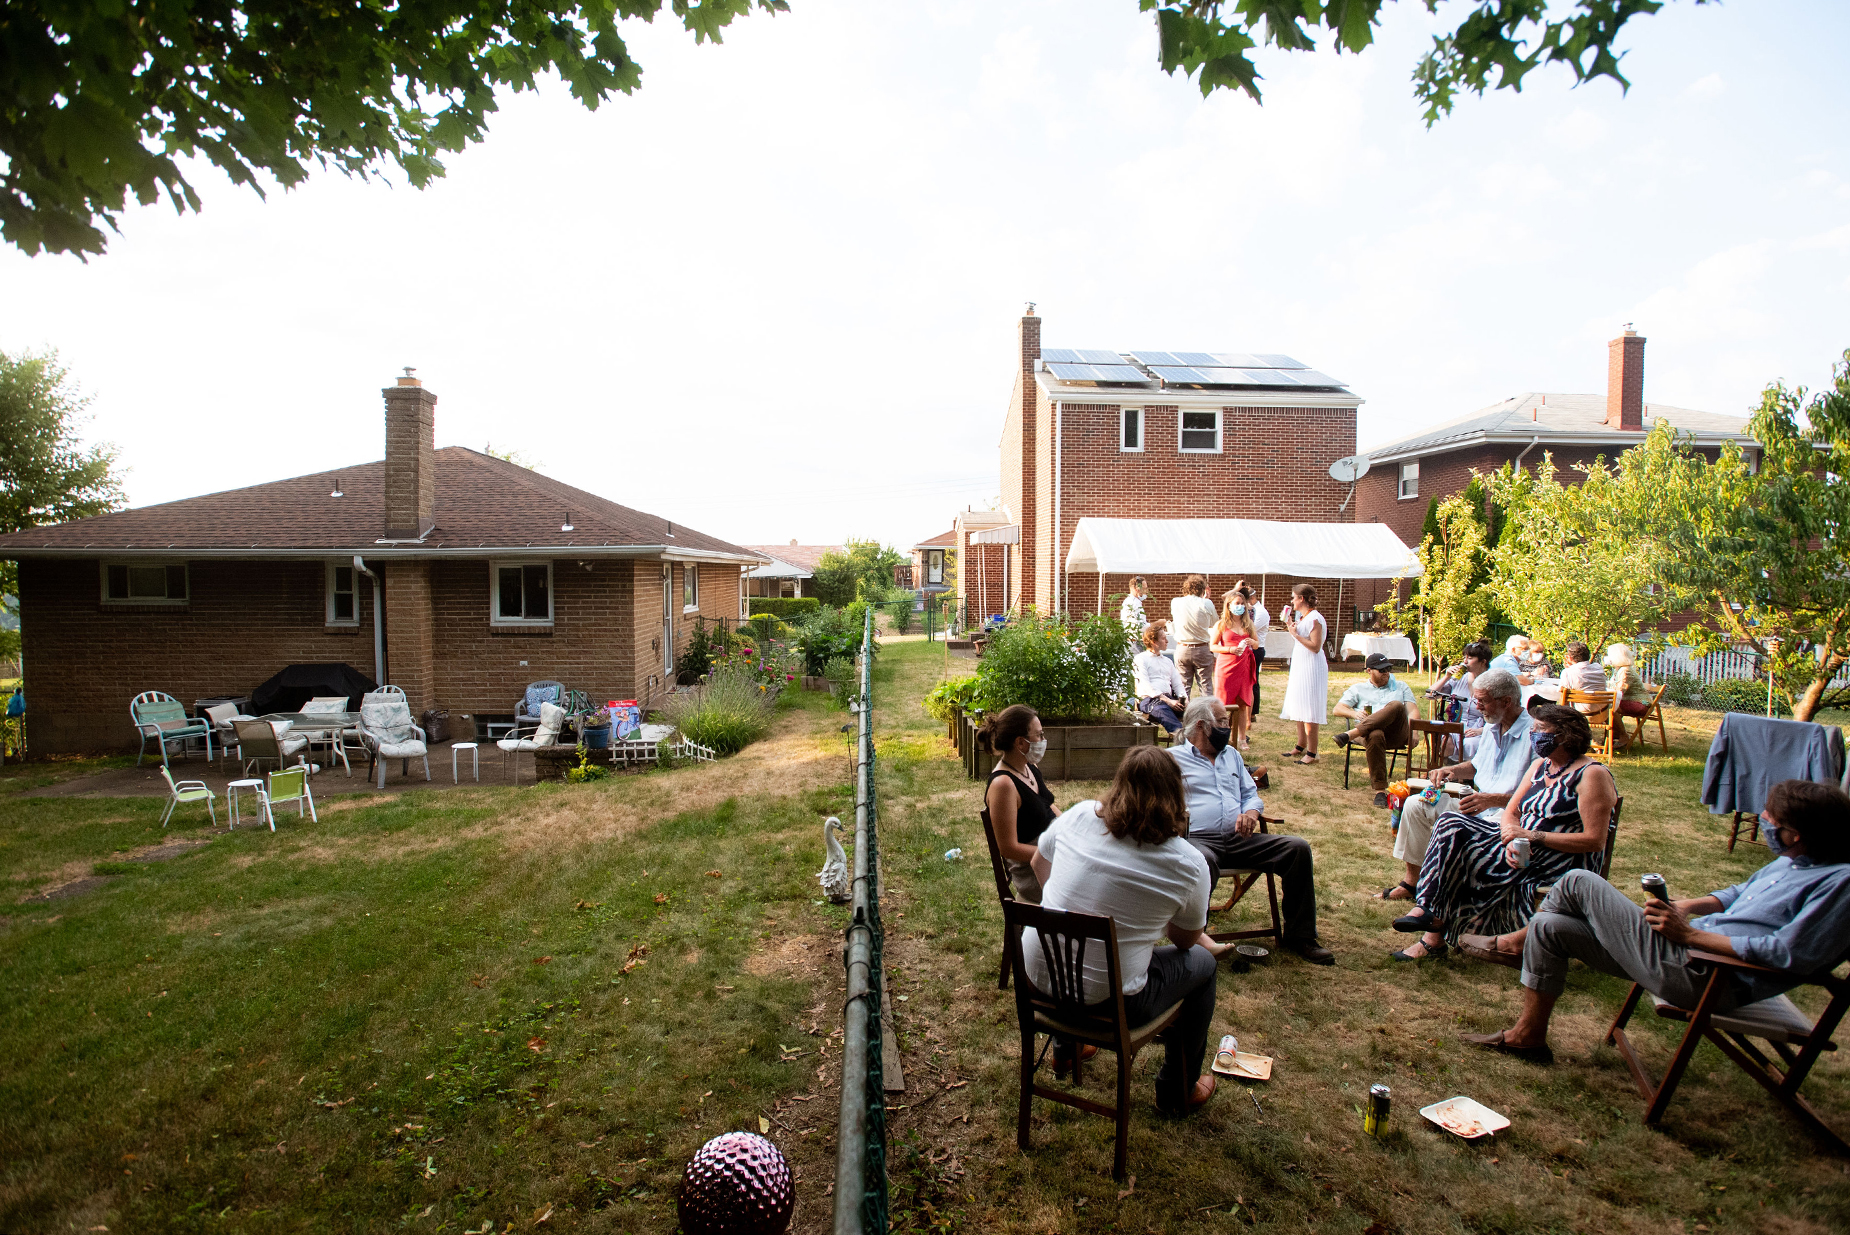 Backyard Weddings - PA Photographer | empty chairs to the house on the left verses how packed it is to the right